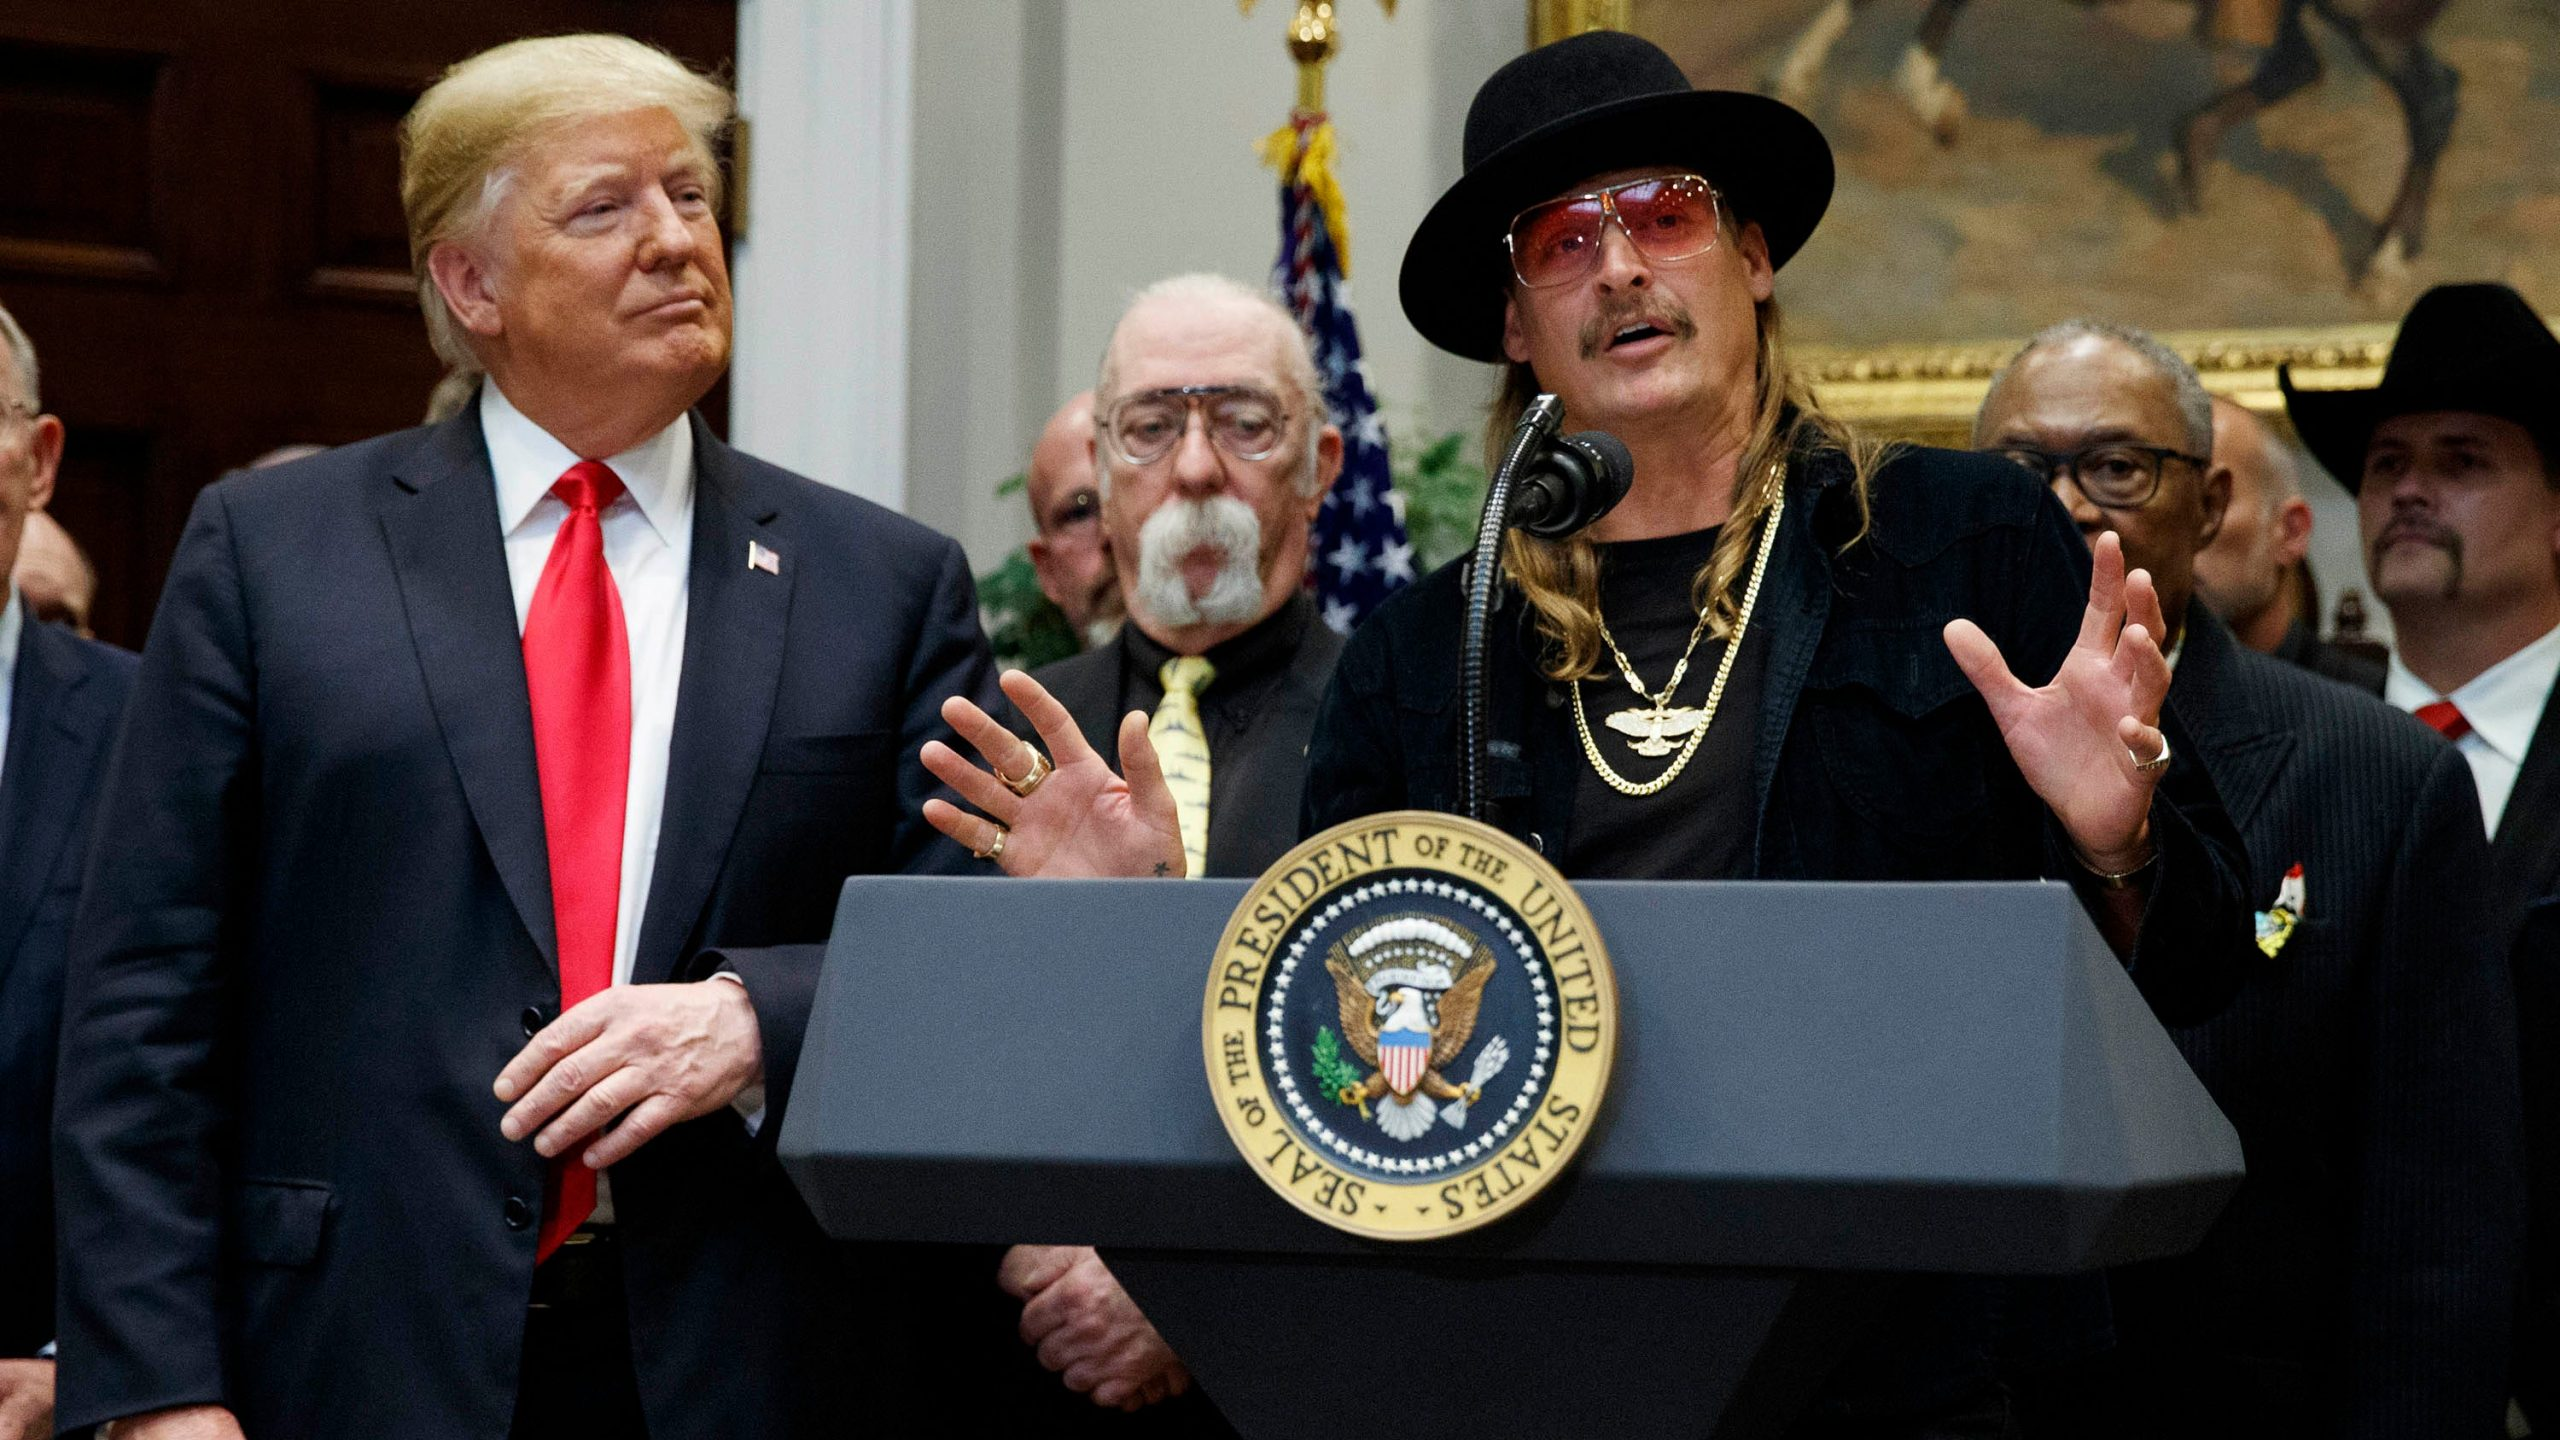 Kid Rock FLAWLESSLY Trolls Liberals With This Announcement